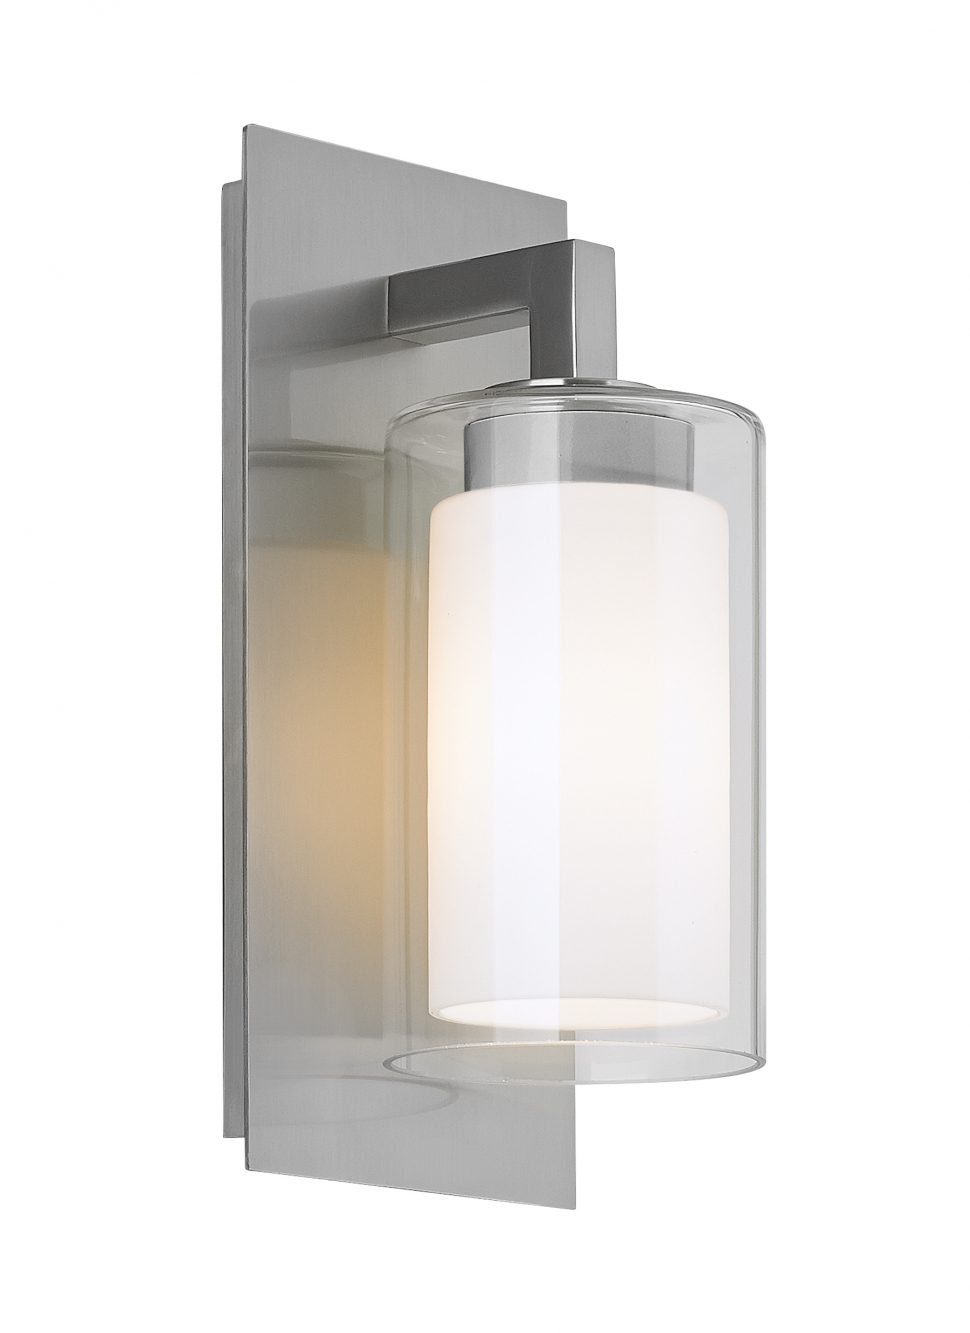 Electrical Wiring : Electrical Wires & Cables Outdoor Ceiling Light Pertaining To Outdoor Ceiling Light With Electrical Outlet (#5 of 15)